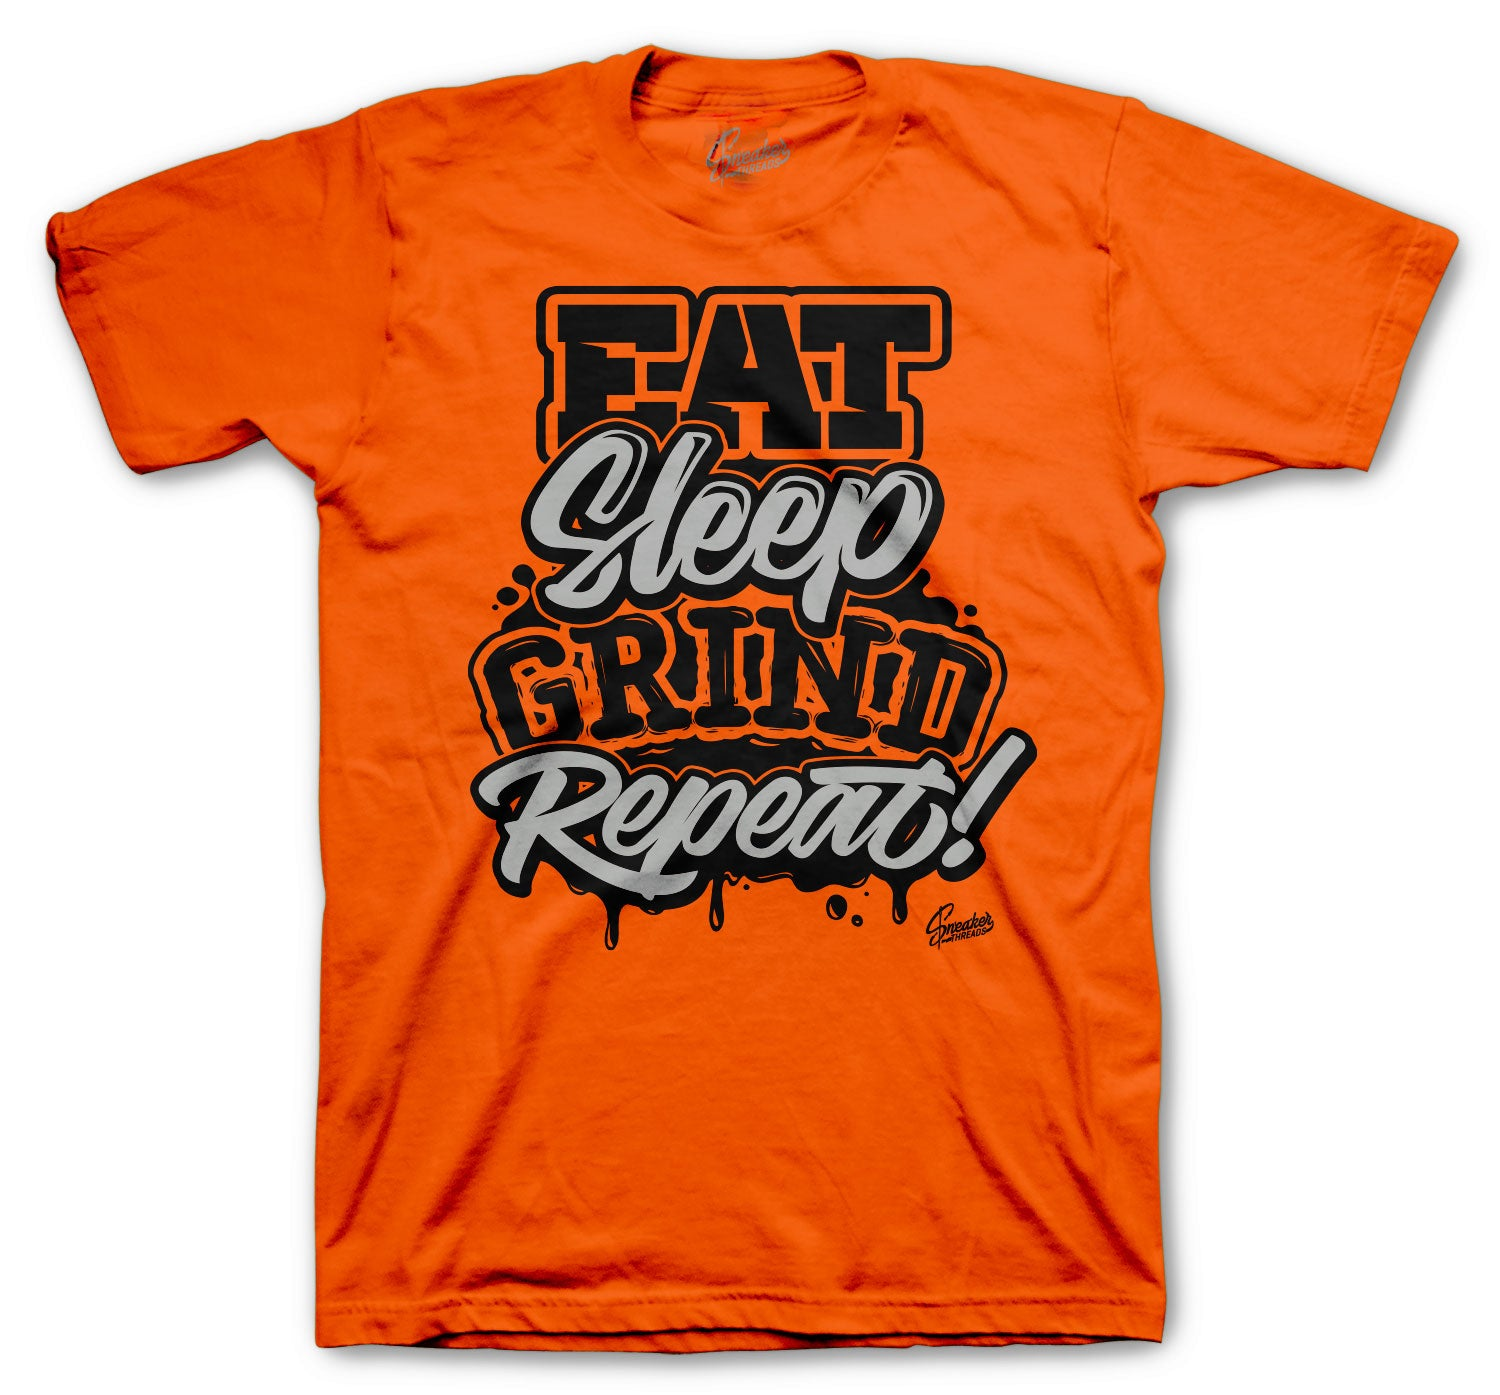 Foamposite Pro Halloween Shirt - Daily Routine - Orange